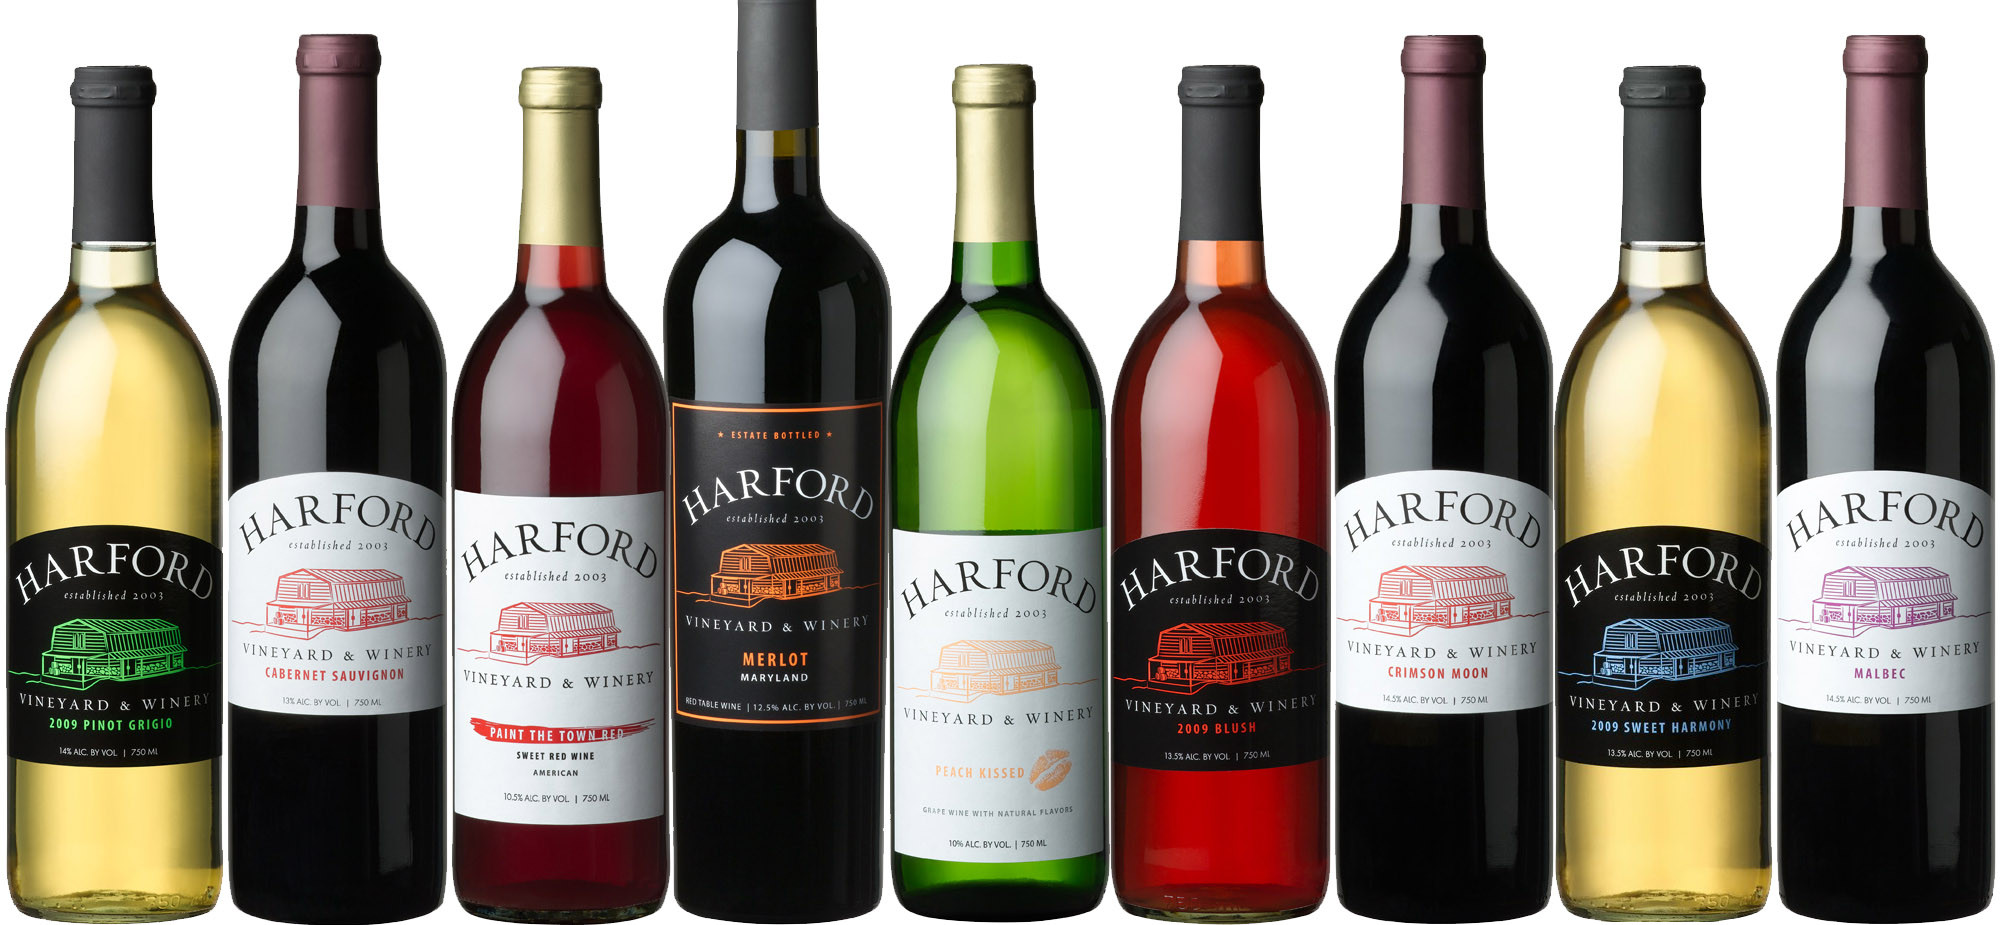 Harford-County-Wines-in-Maryland-Bottles3